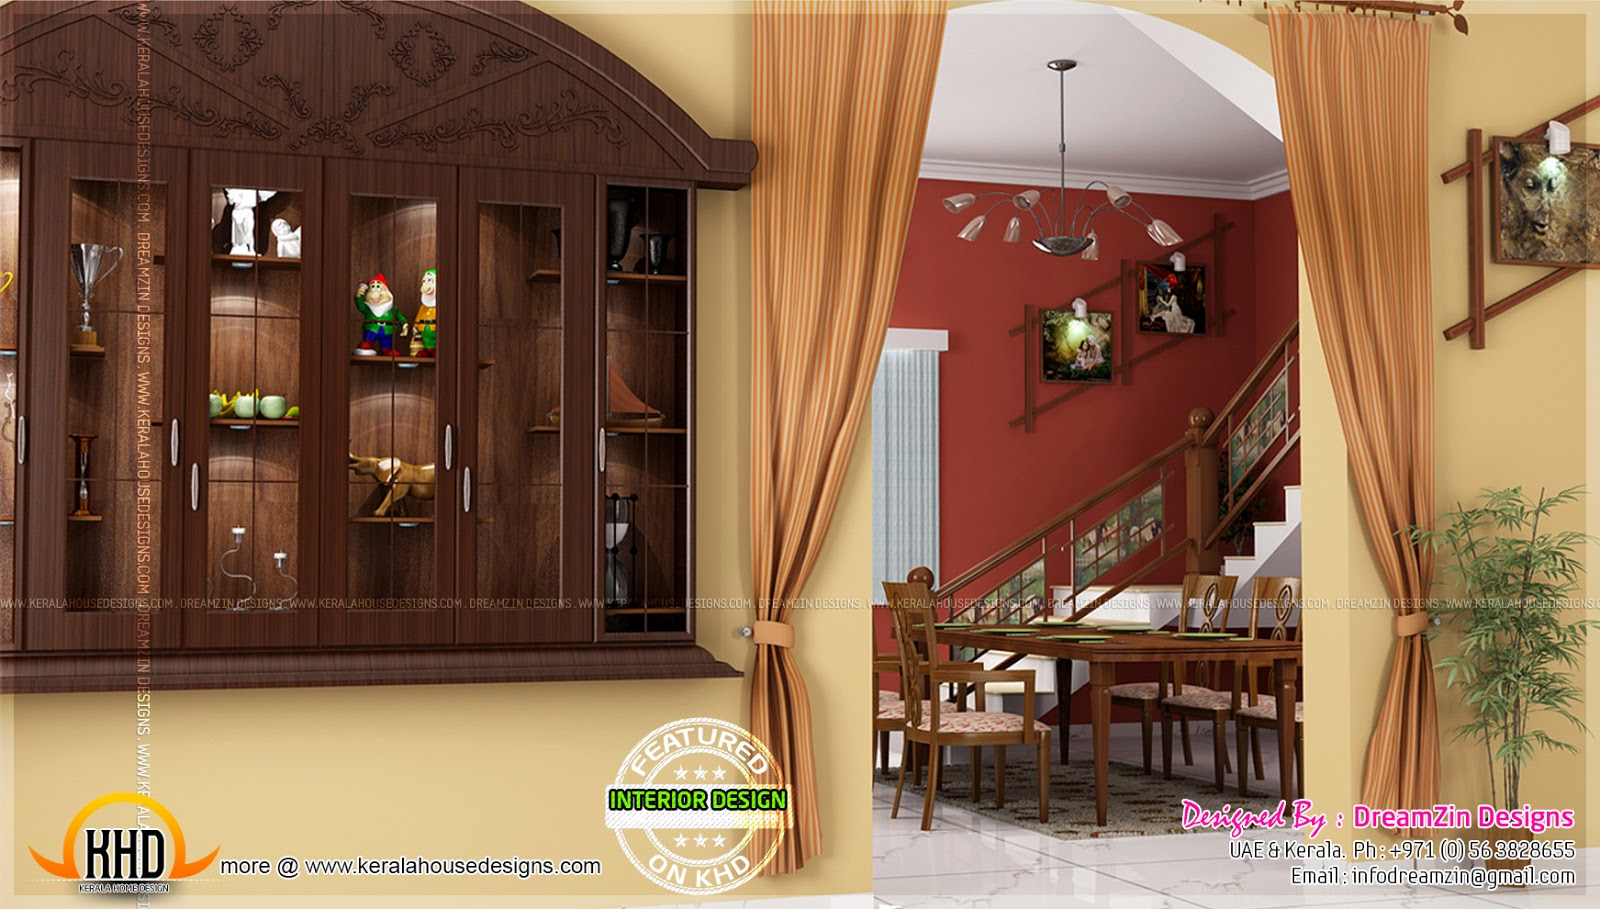 Kitchen interior dining area design home kerala plans for Wall showcase designs for living room indian style